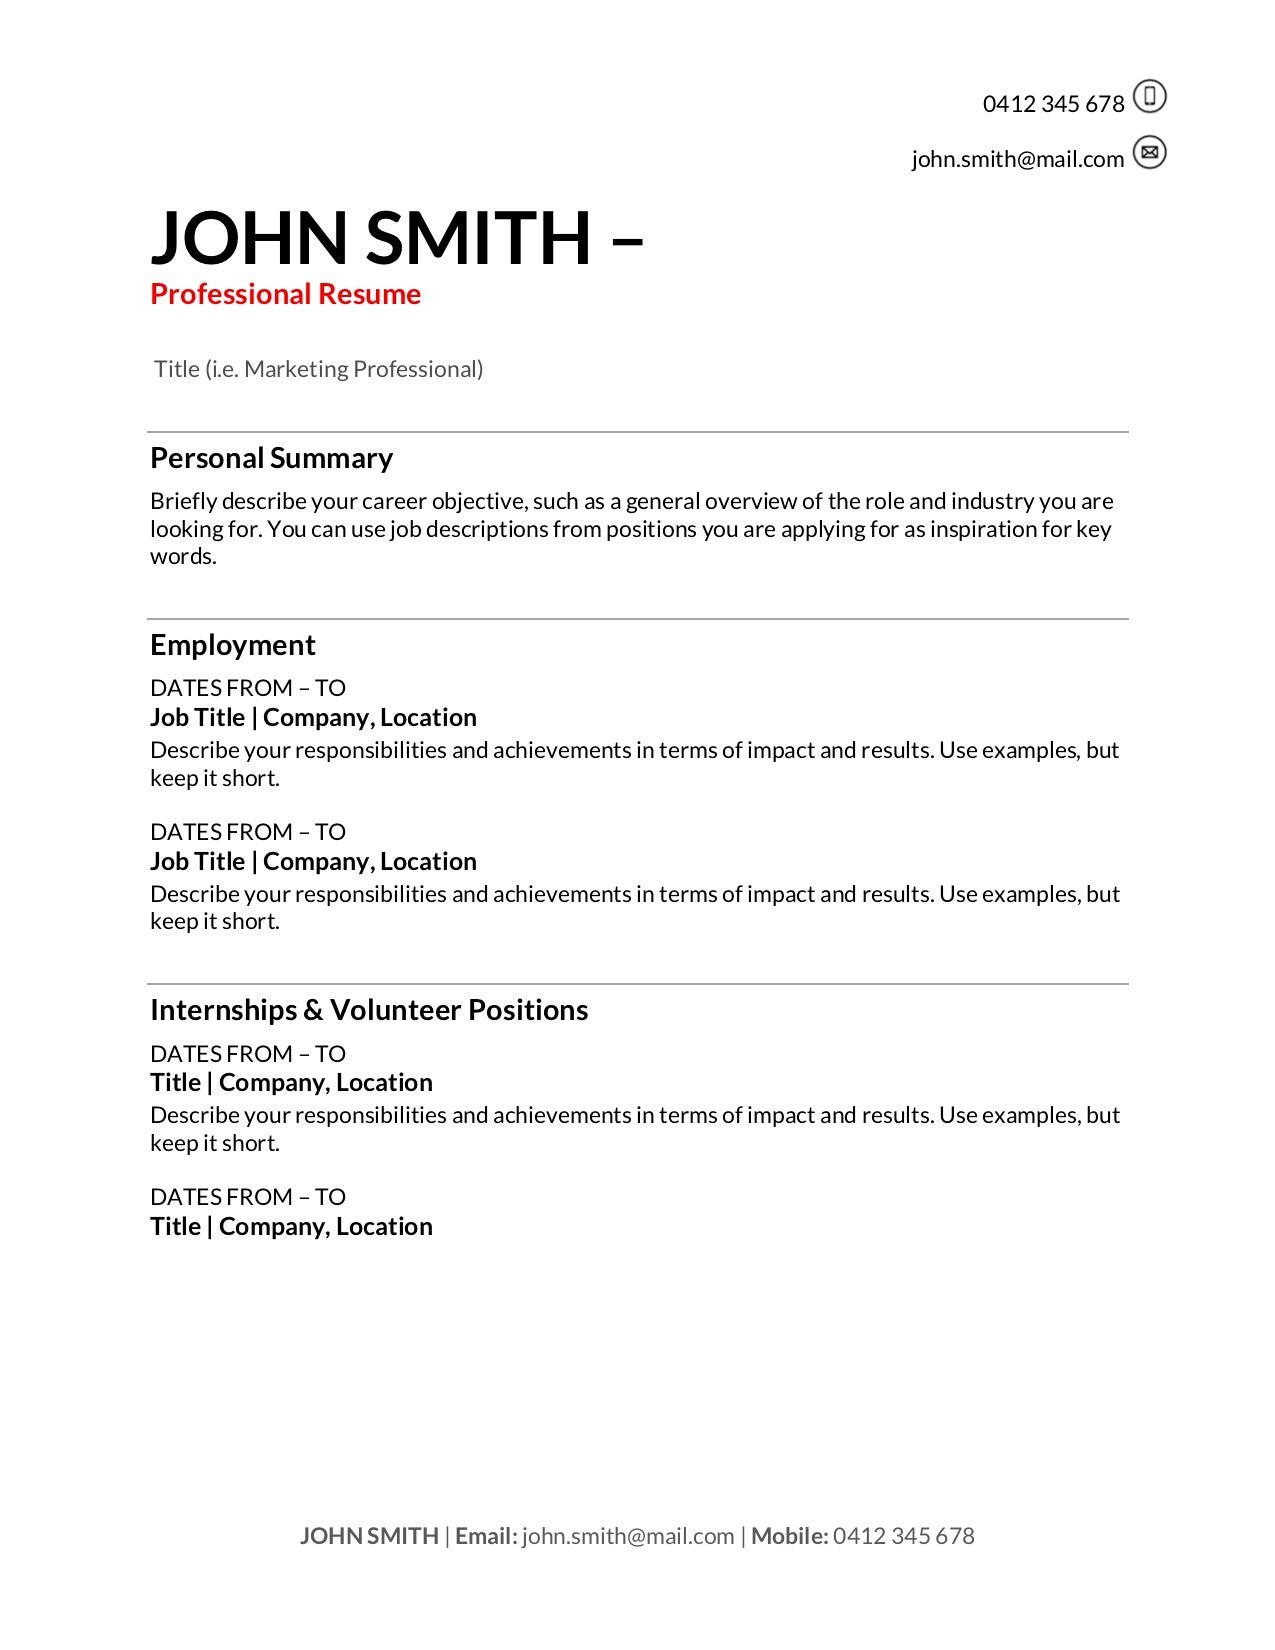 free resume templates to write in training au type objective for developer monster Resume Type In Resume Templates